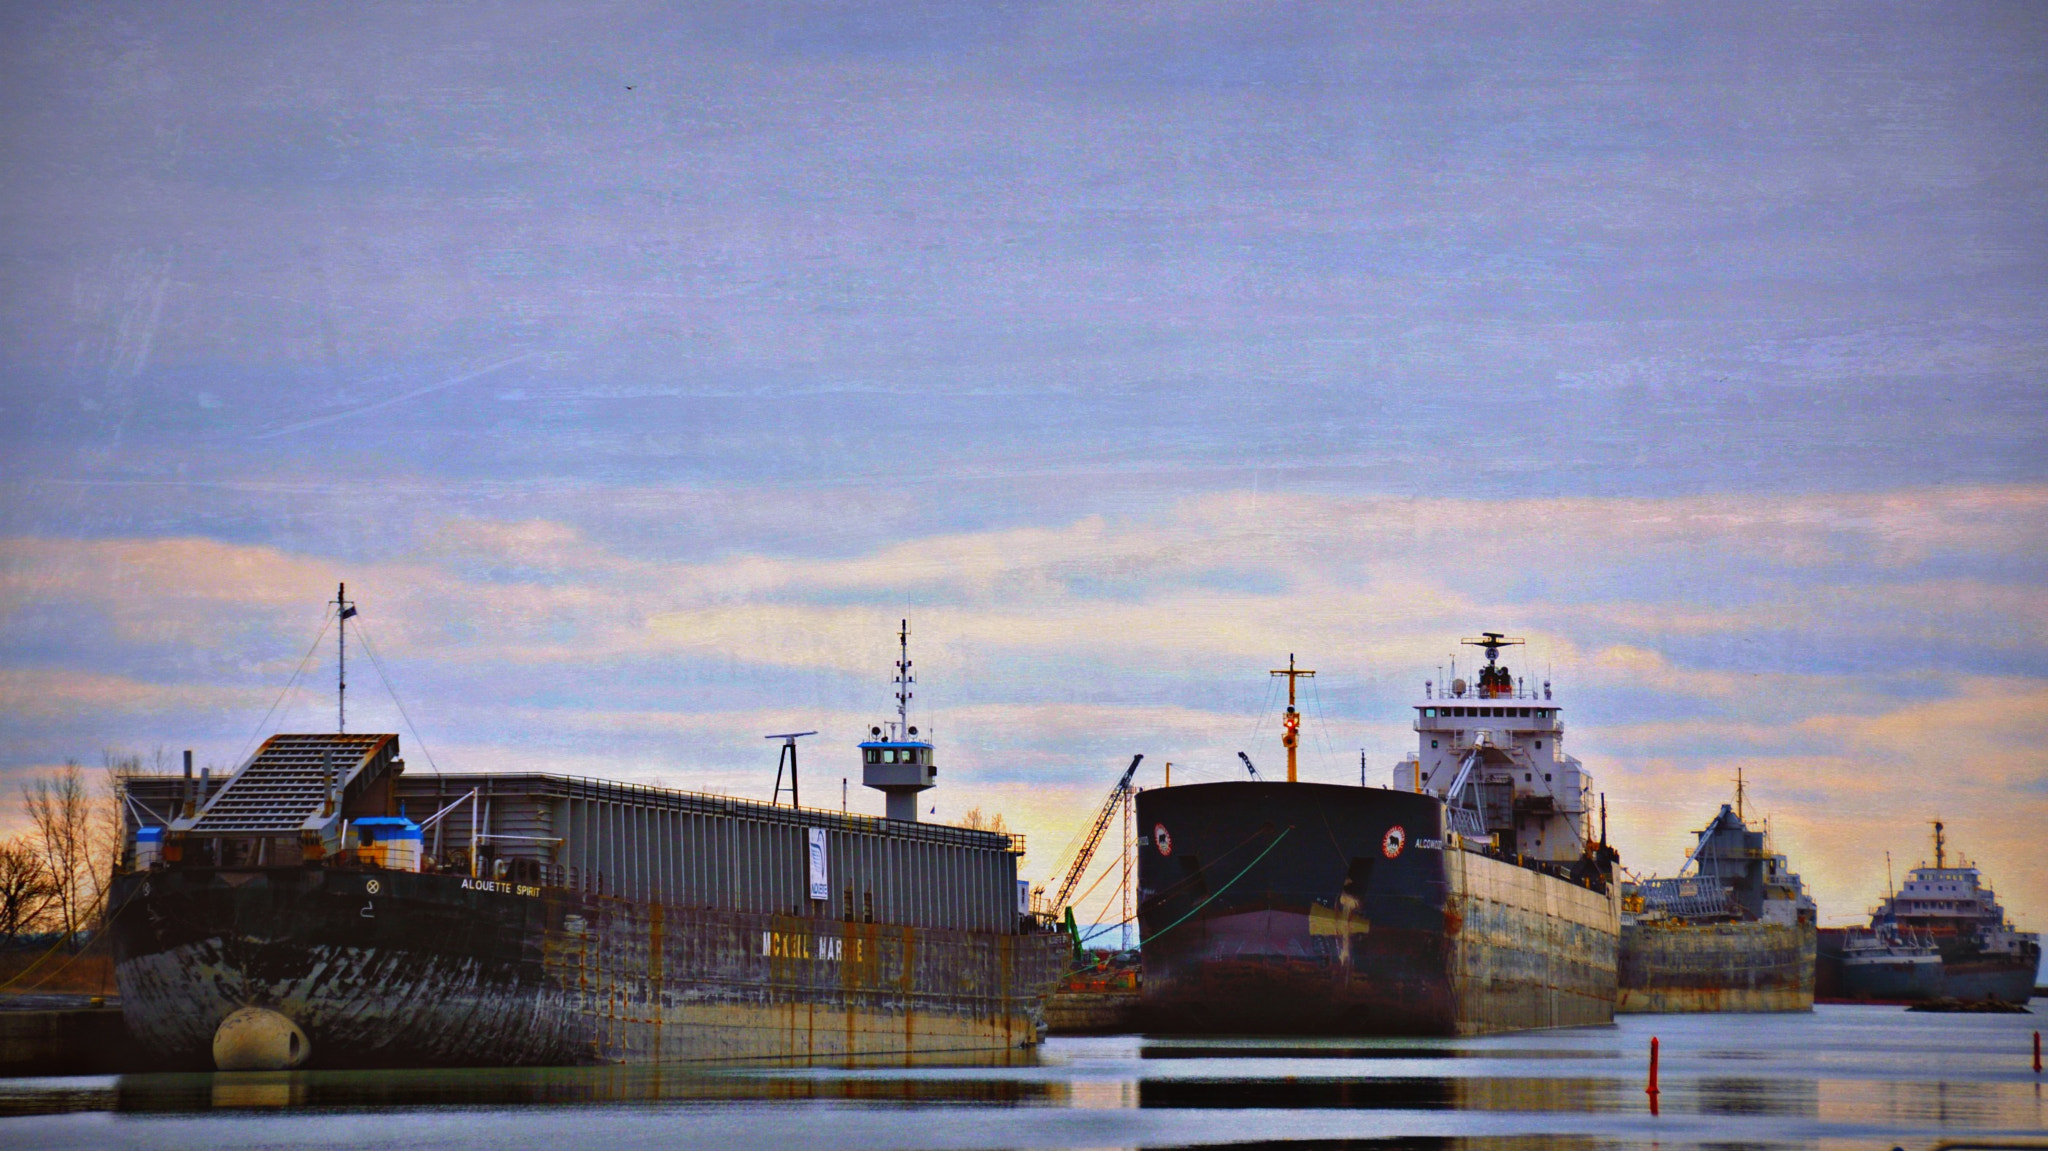 Photograph Shipping Canal by Kimberly Hart on 500px